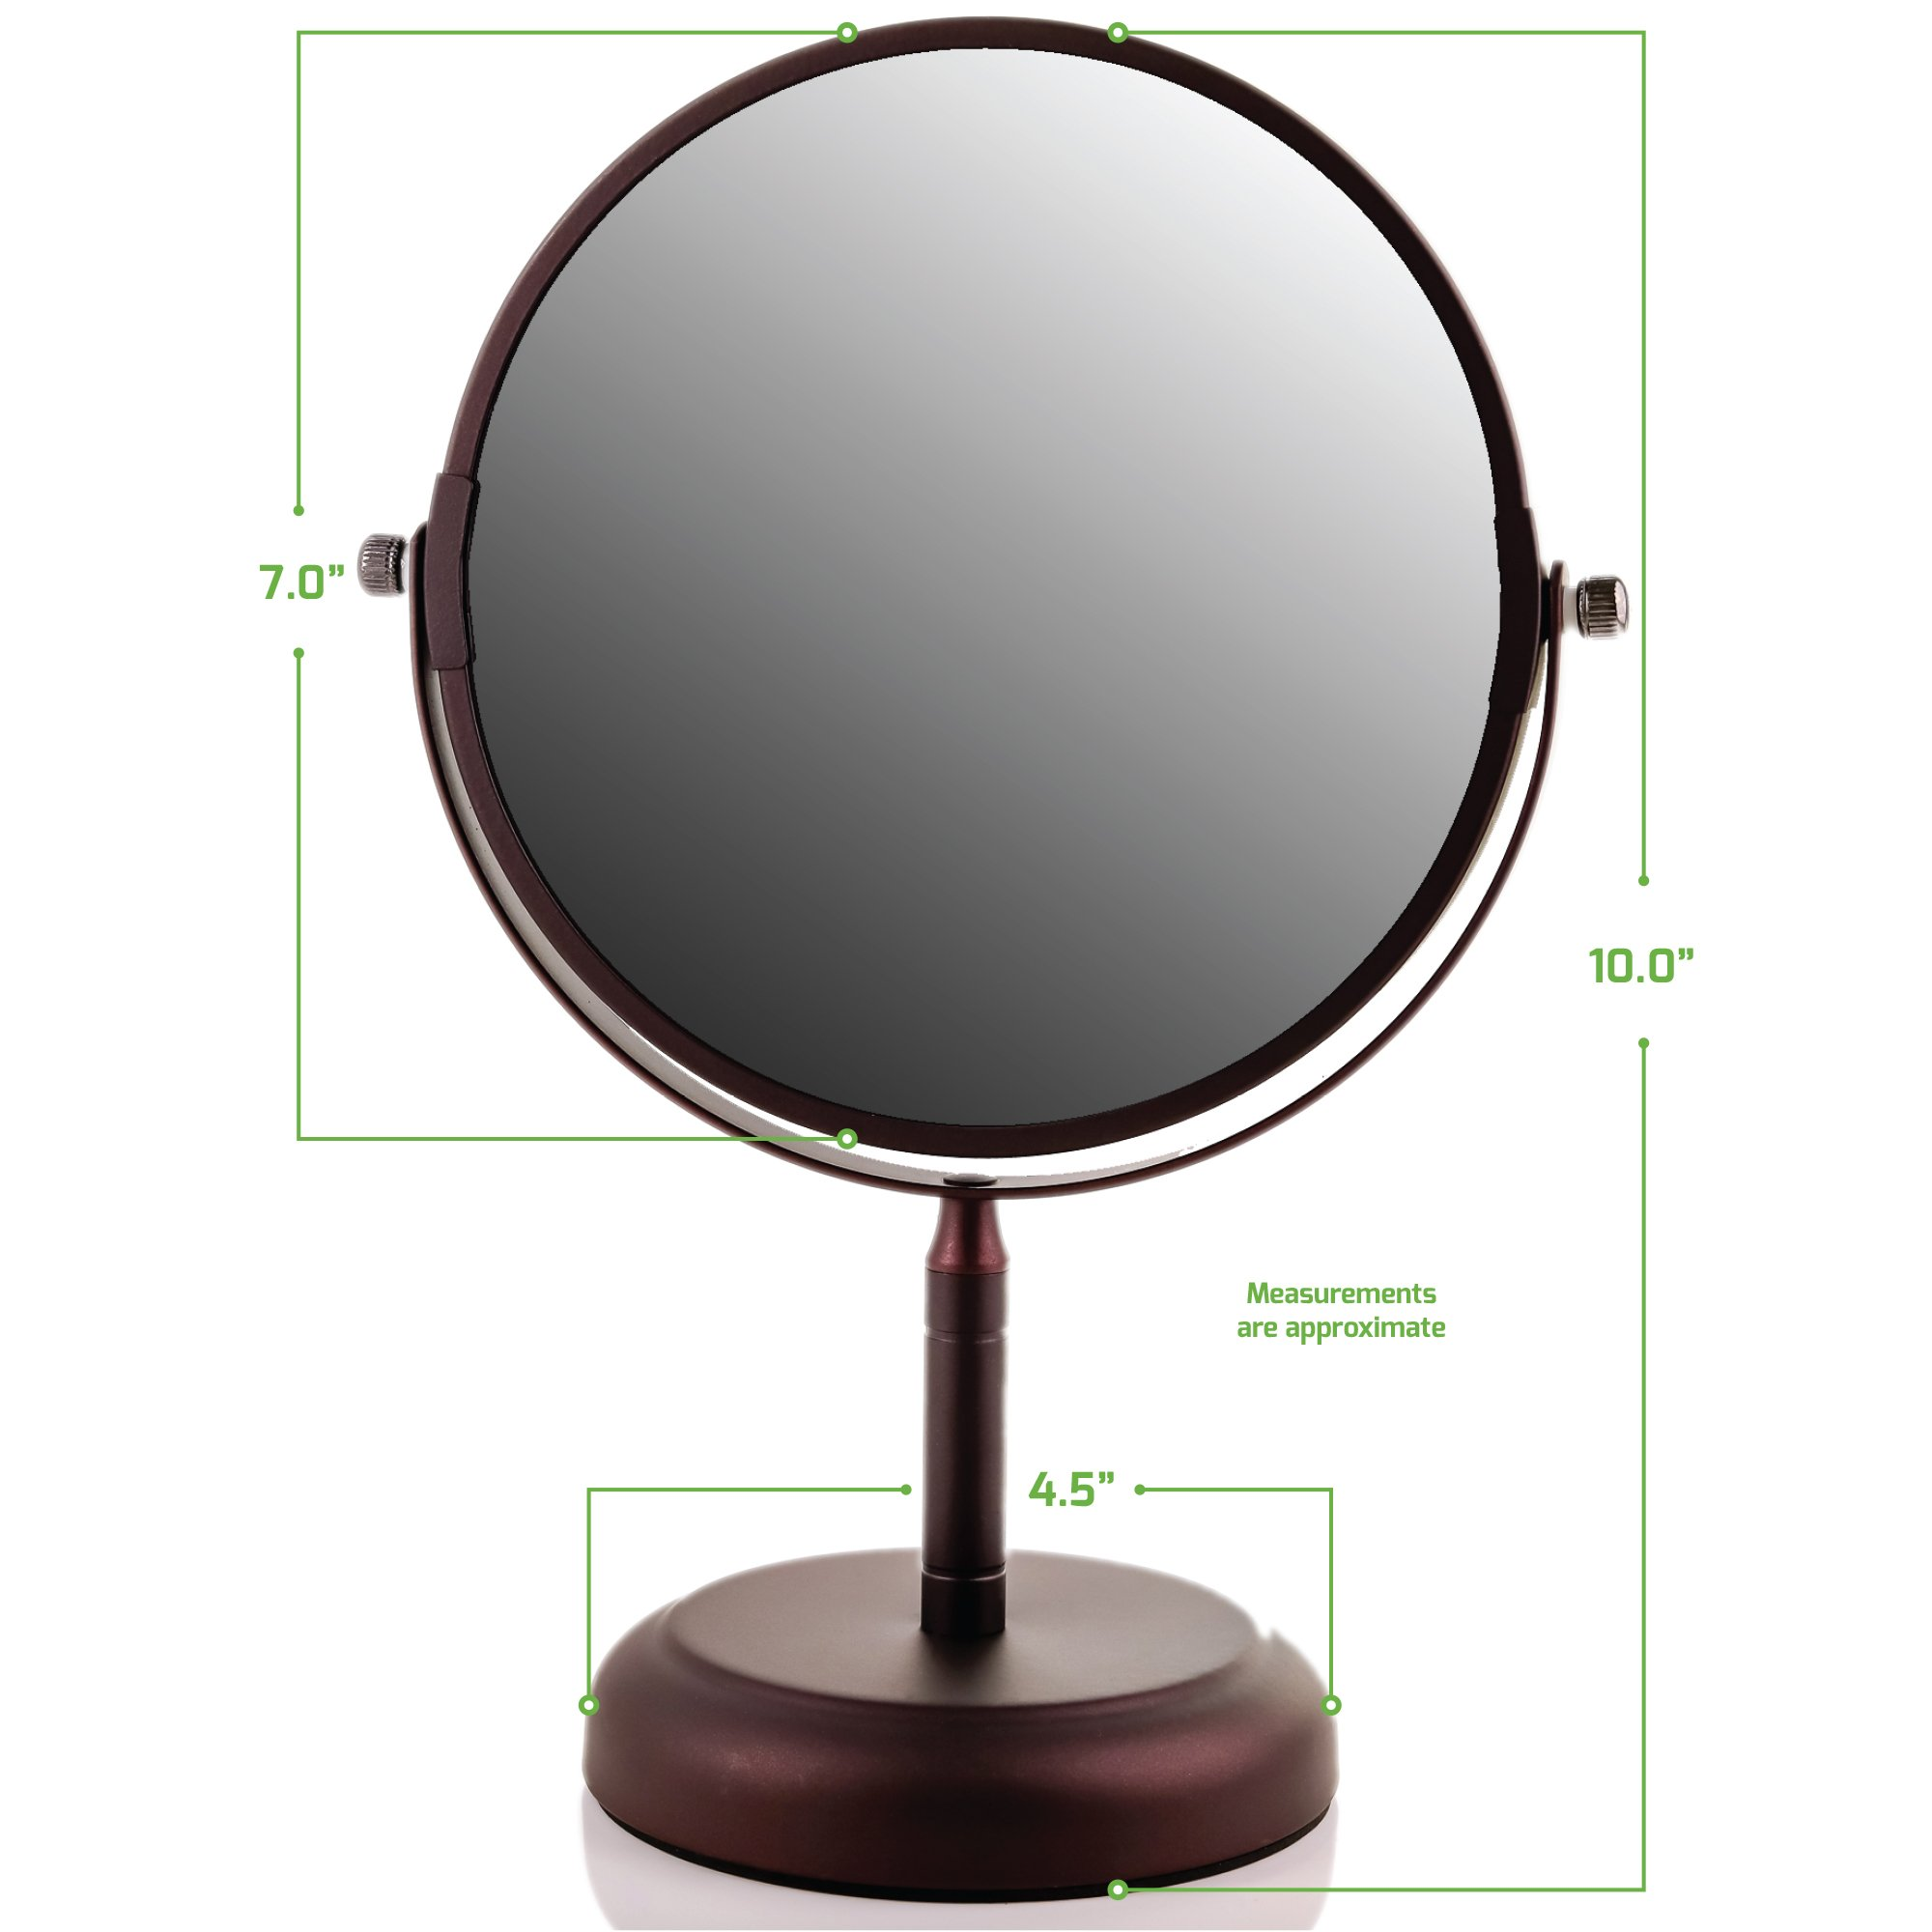 Ovente Round Tabletop Vanity Mirror, 7 Inch, Dual-Sided with 1x/5x magnification, Antique Bronze (MNLDT70ABZ1X5X) by Ovente (Image #9)